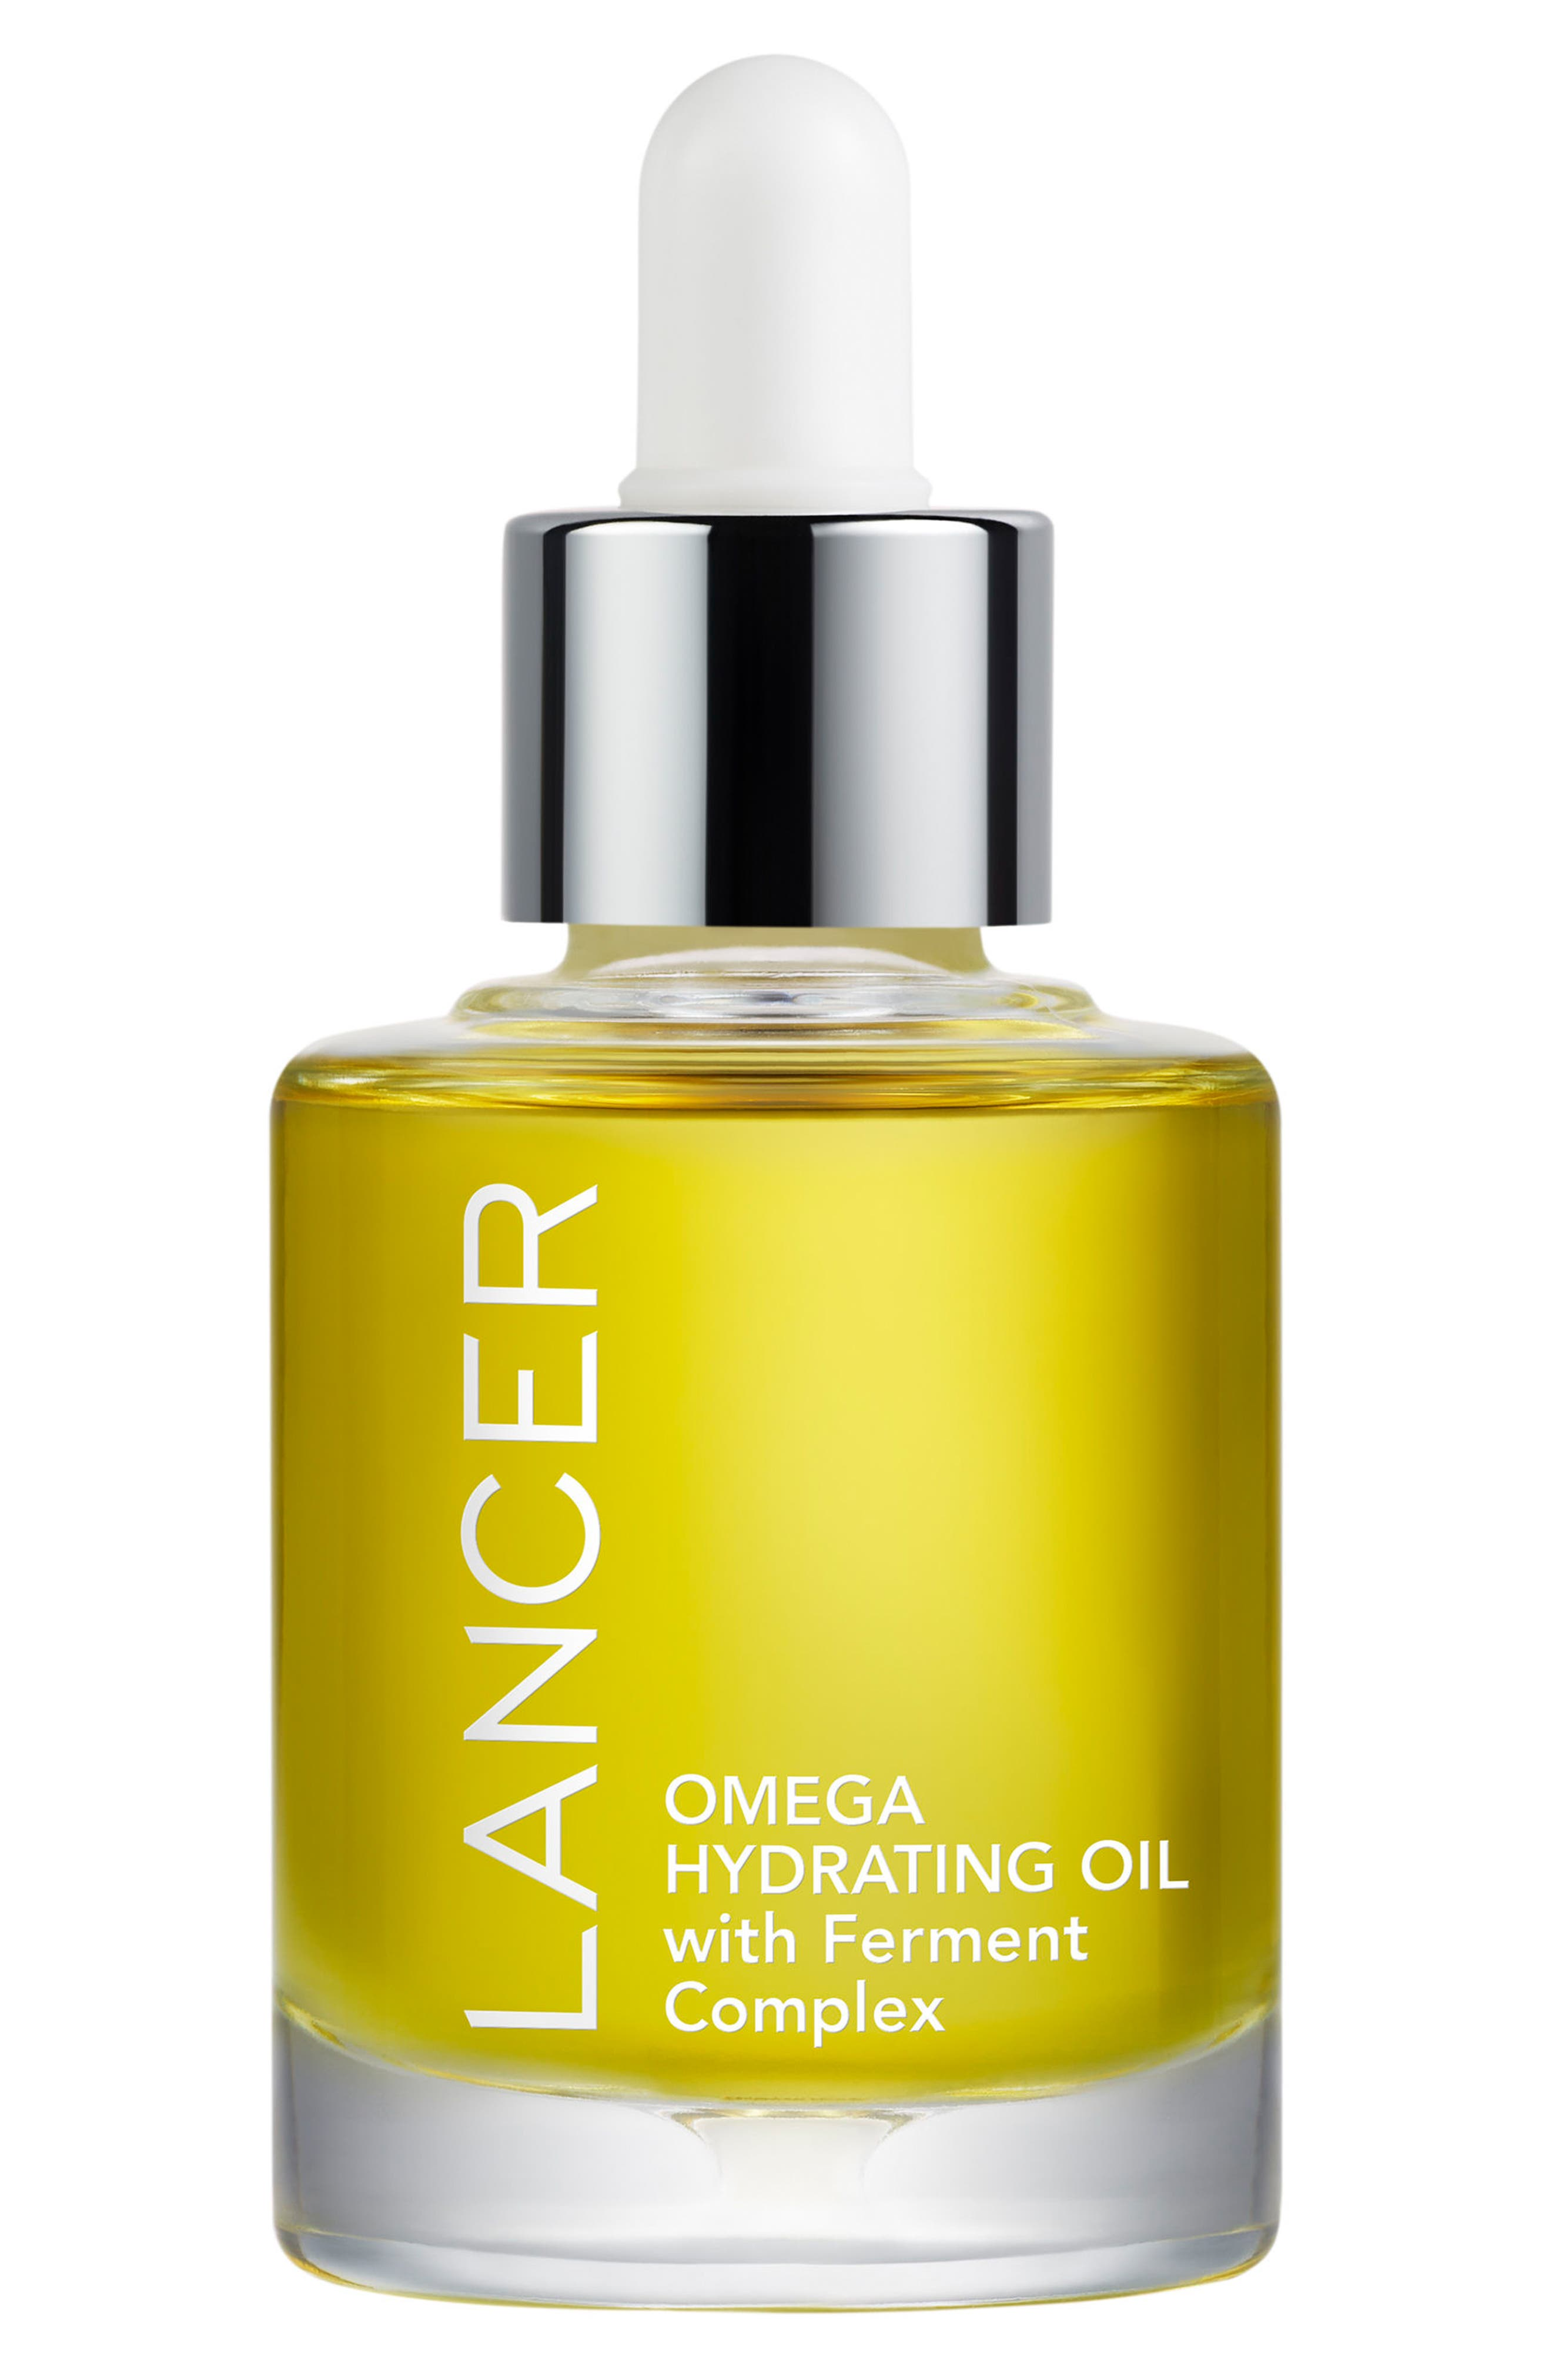 Omega Hydrating Oil,                             Main thumbnail 1, color,                             No Color